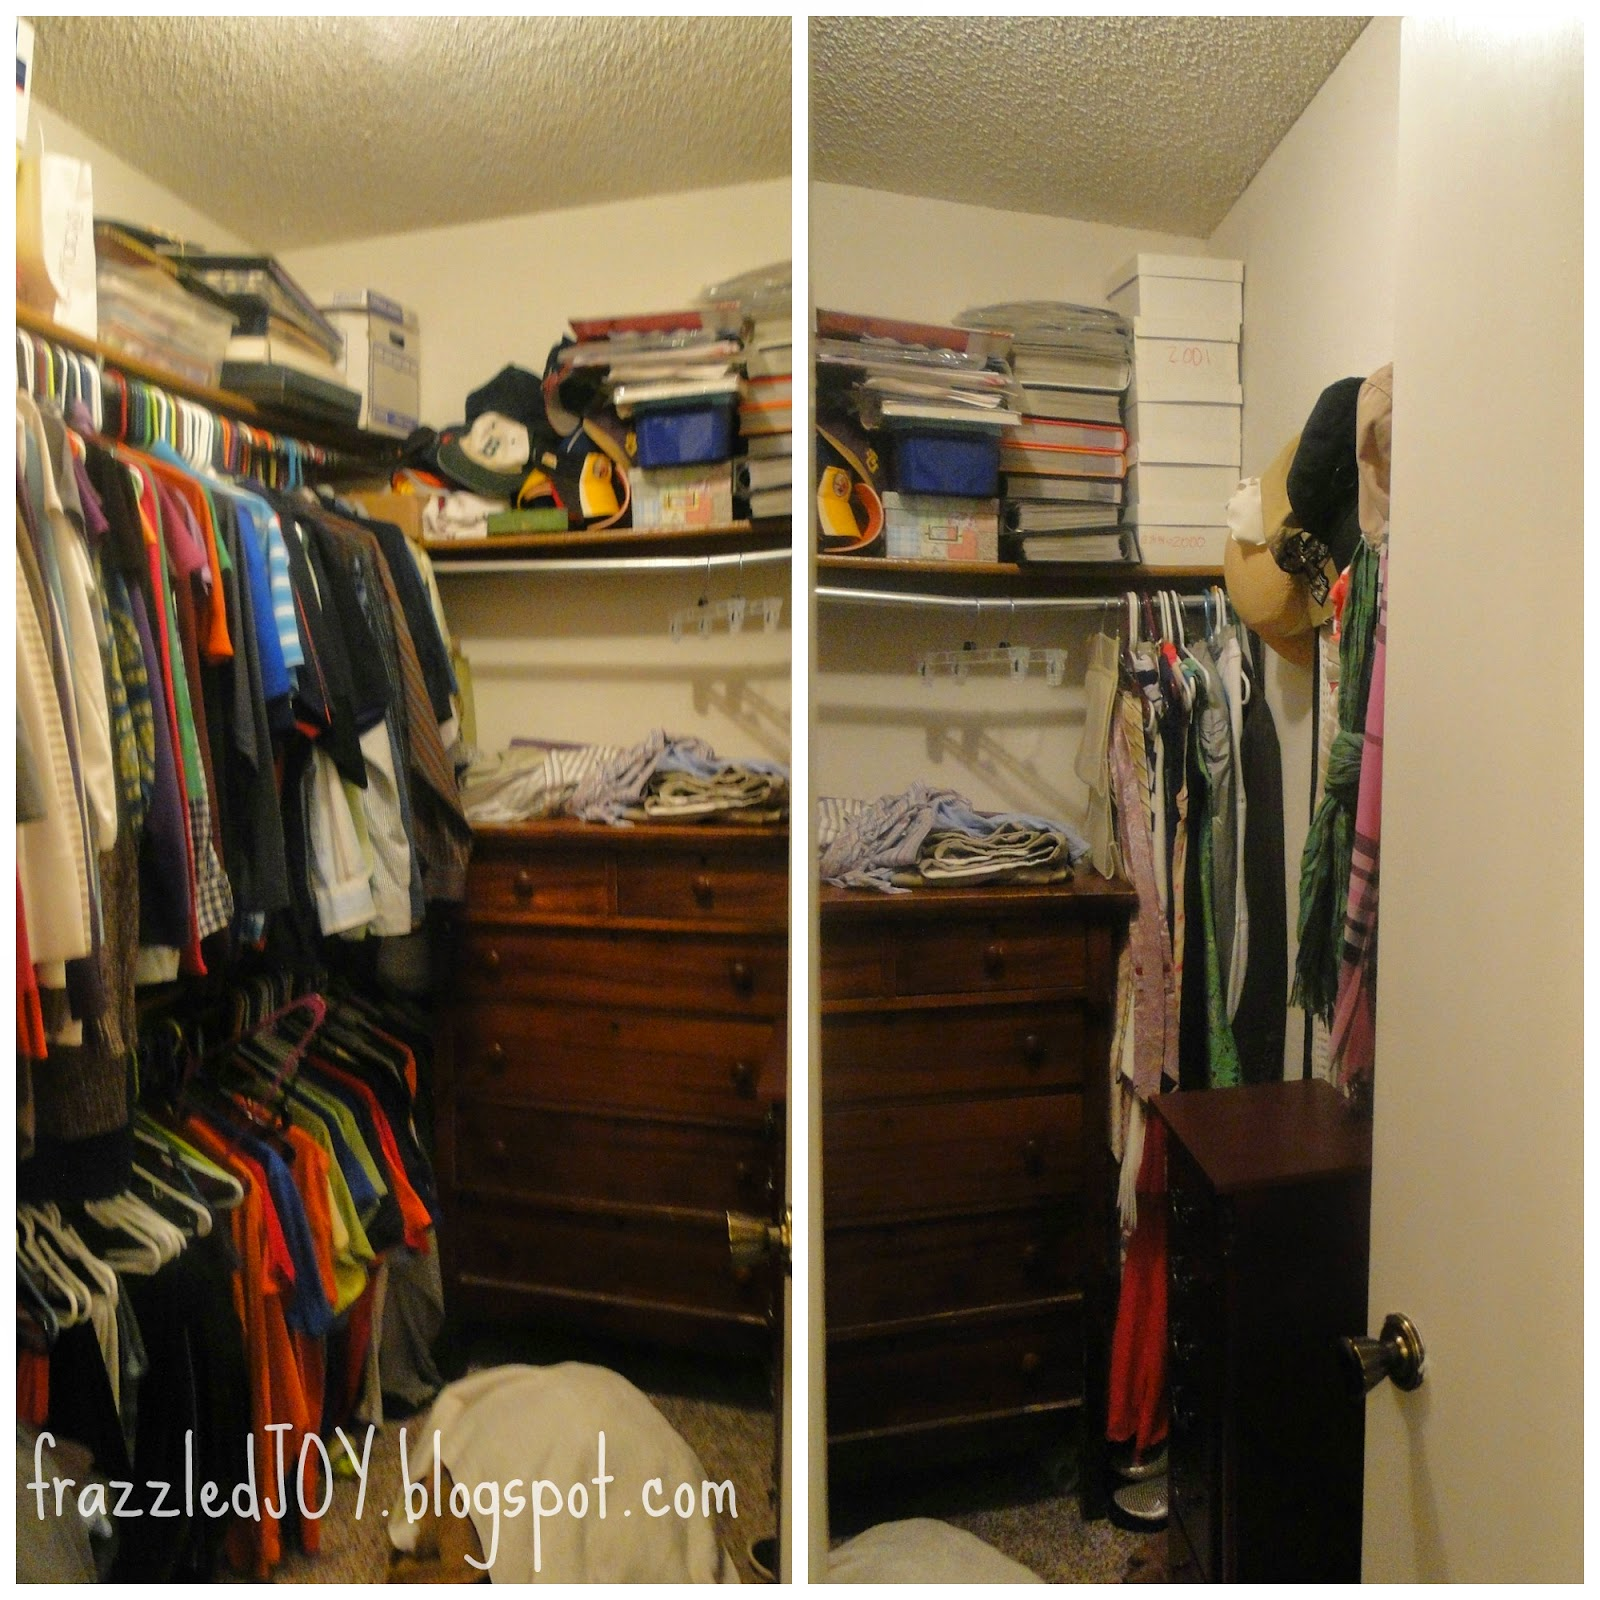 cramped walk-in closet